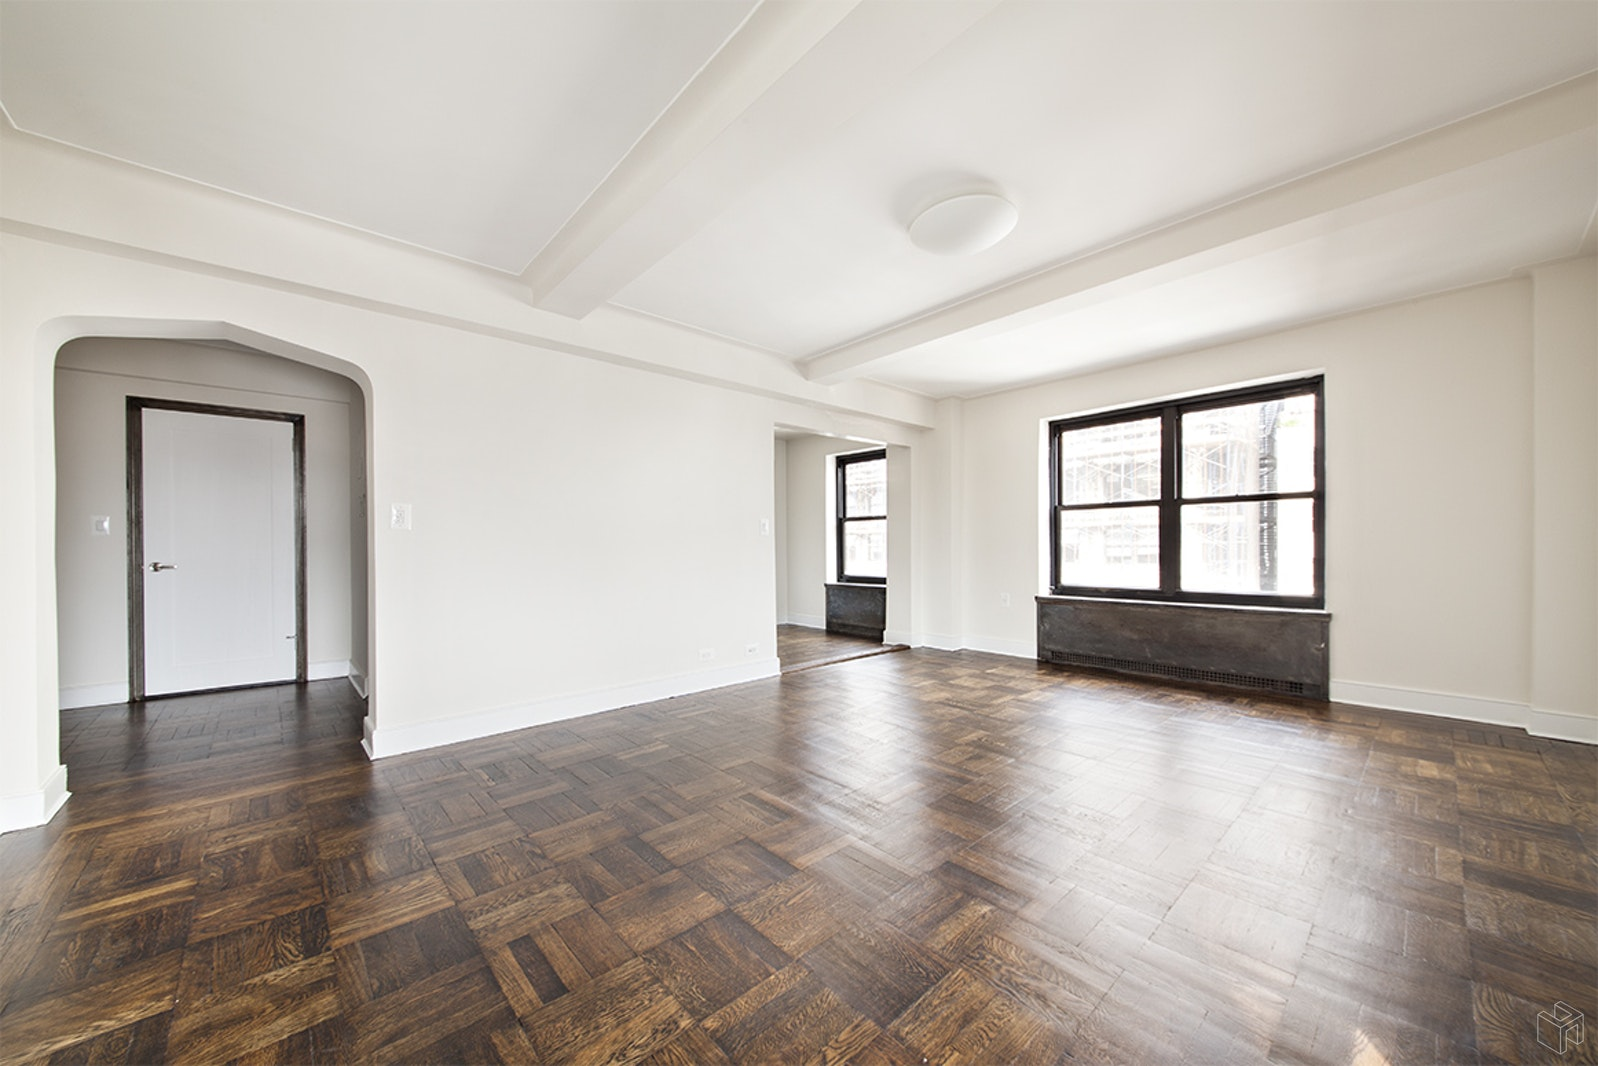 56 Seventh Avenue, West Village, NYC, 10011, Price Not Disclosed, Rented Property, Halstead Real Estate, Photo 2